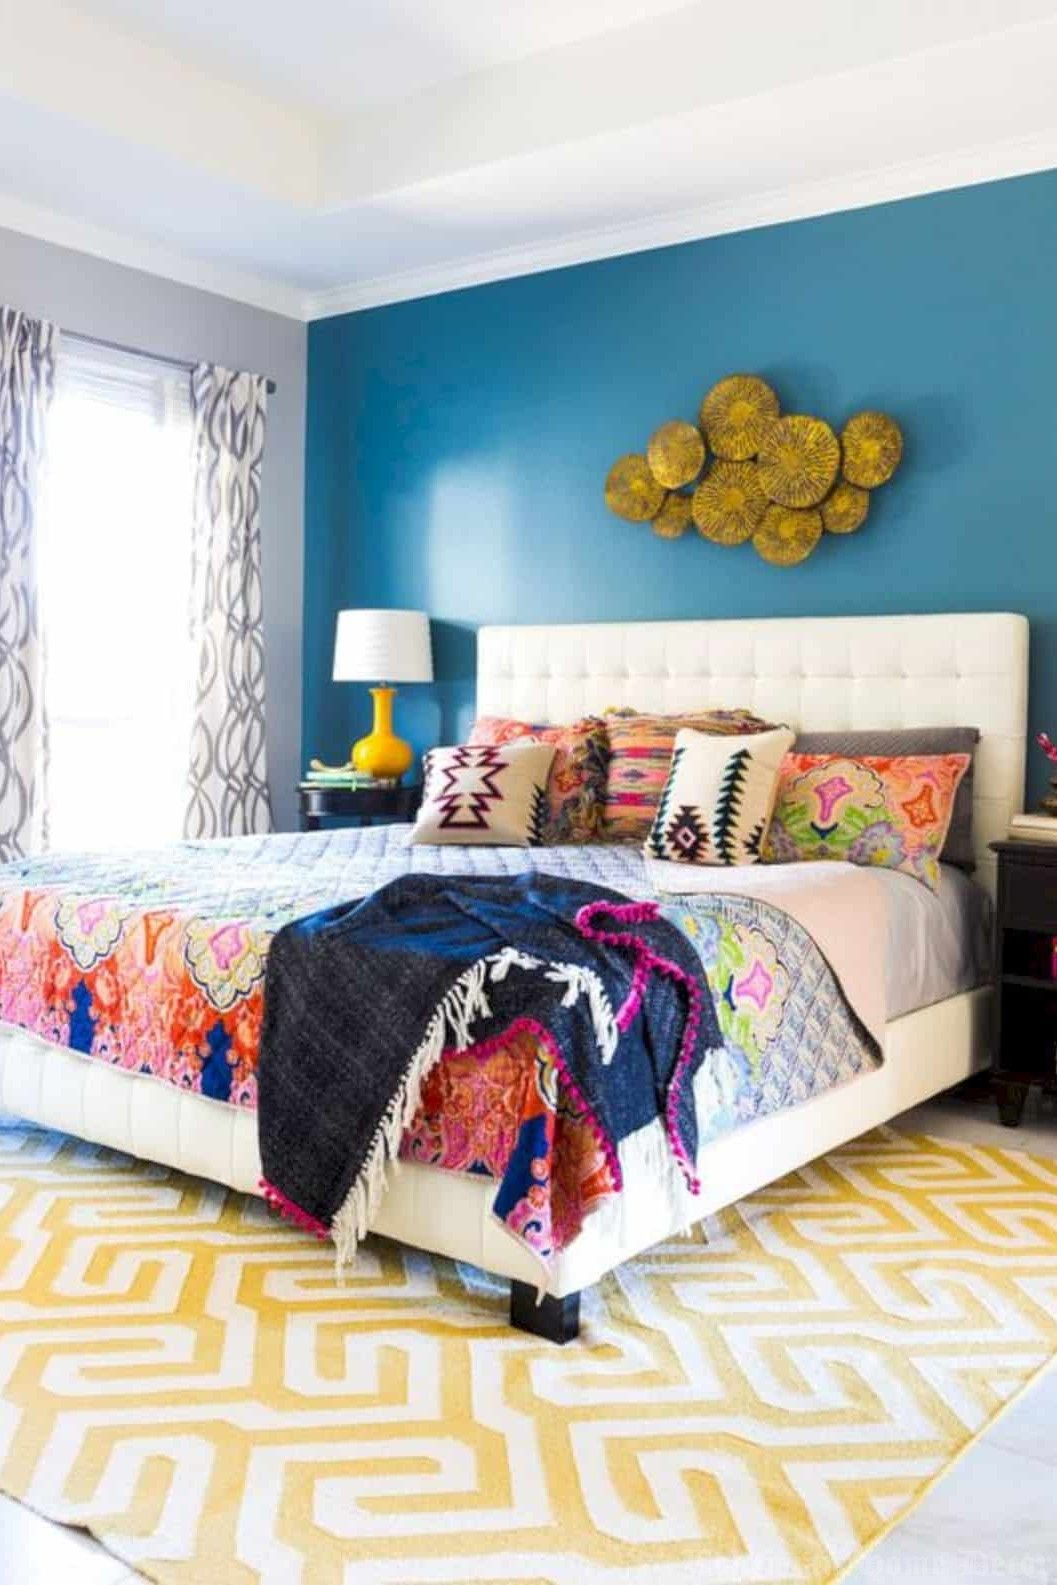 Top 3 Ways To Buy A Used Bohemian Home Decor Oct 2020